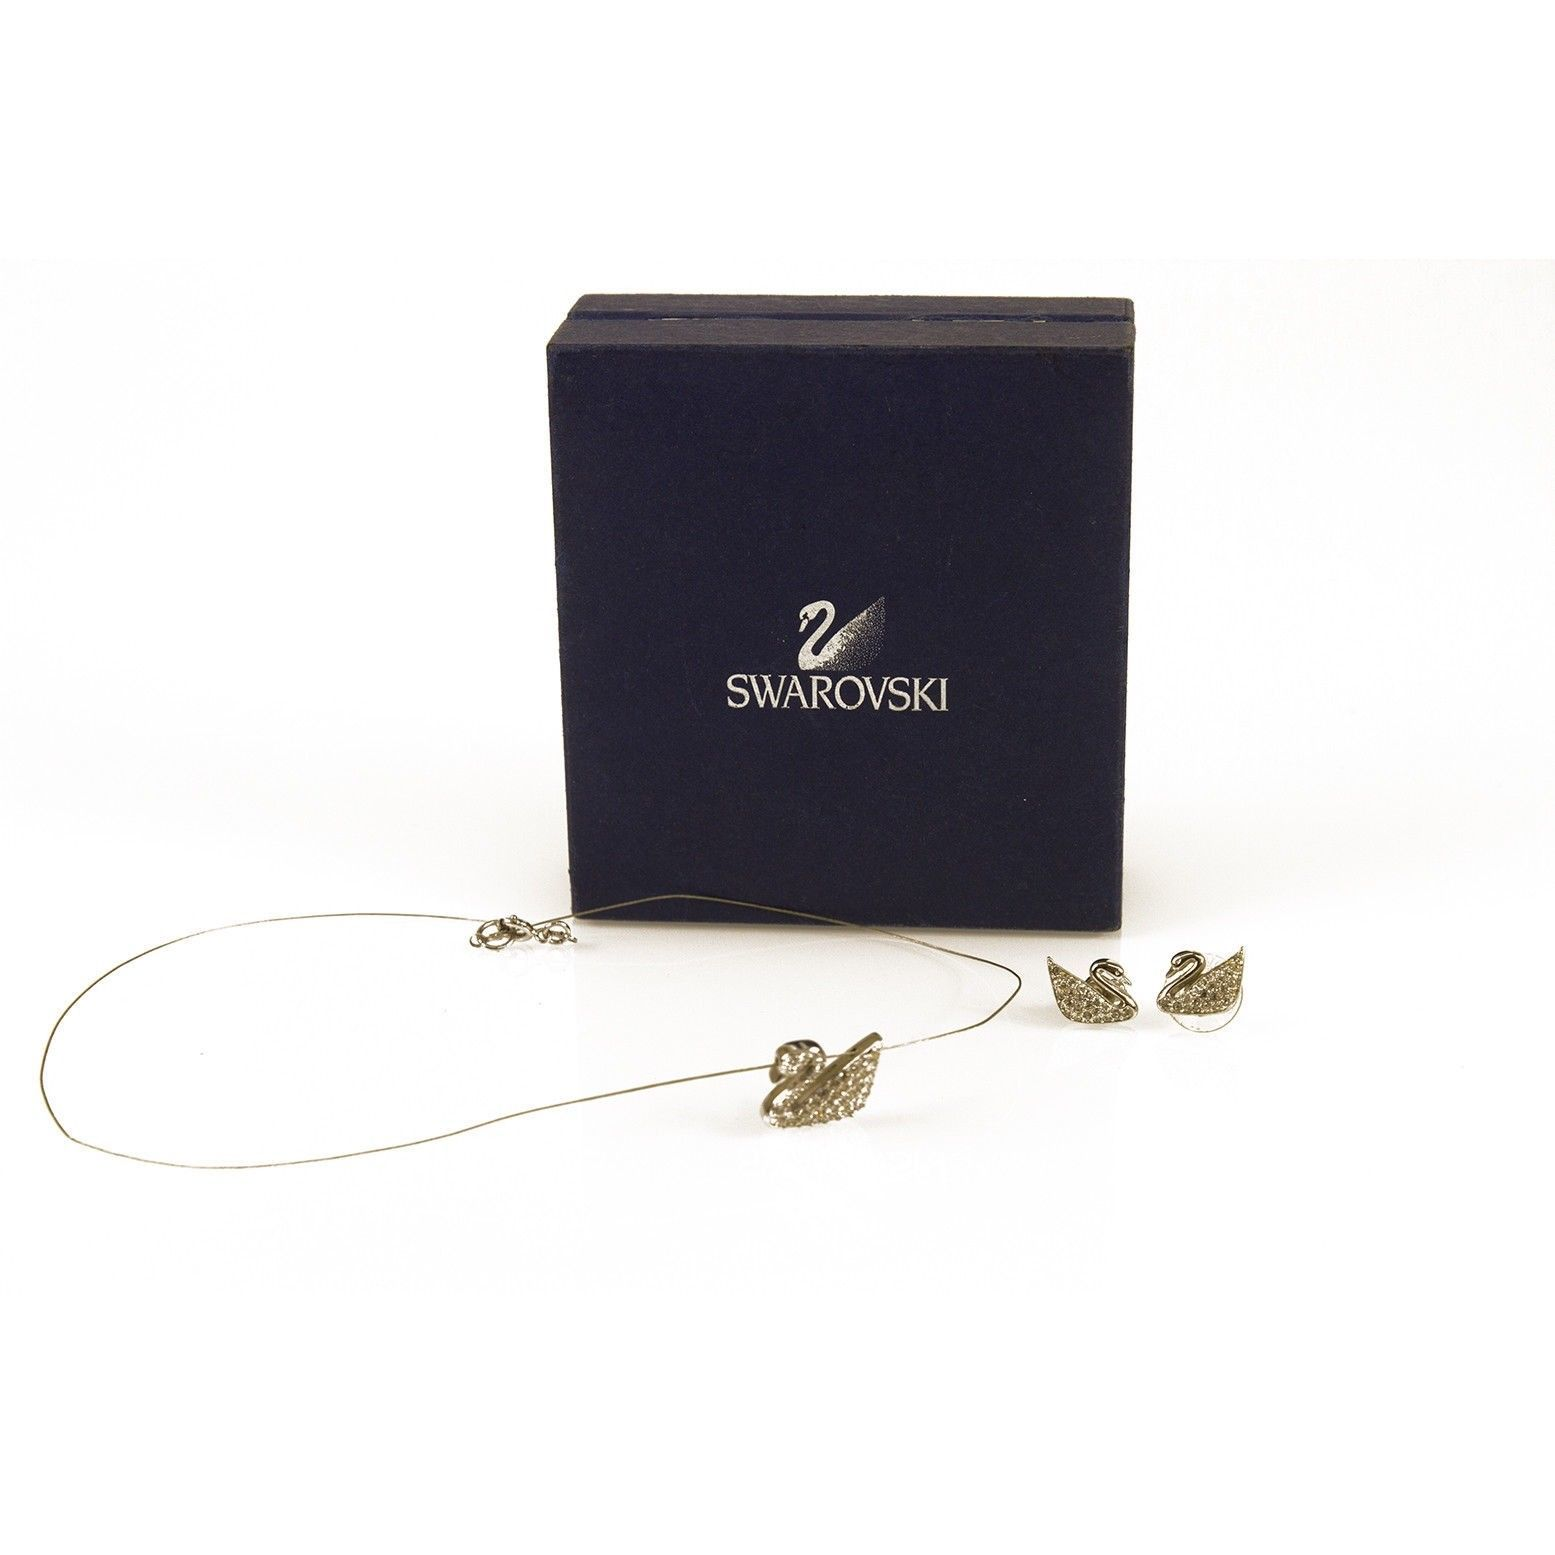 Primary image for Swarovski Signature Iconic Swan Pendant in String & matching Earrings set